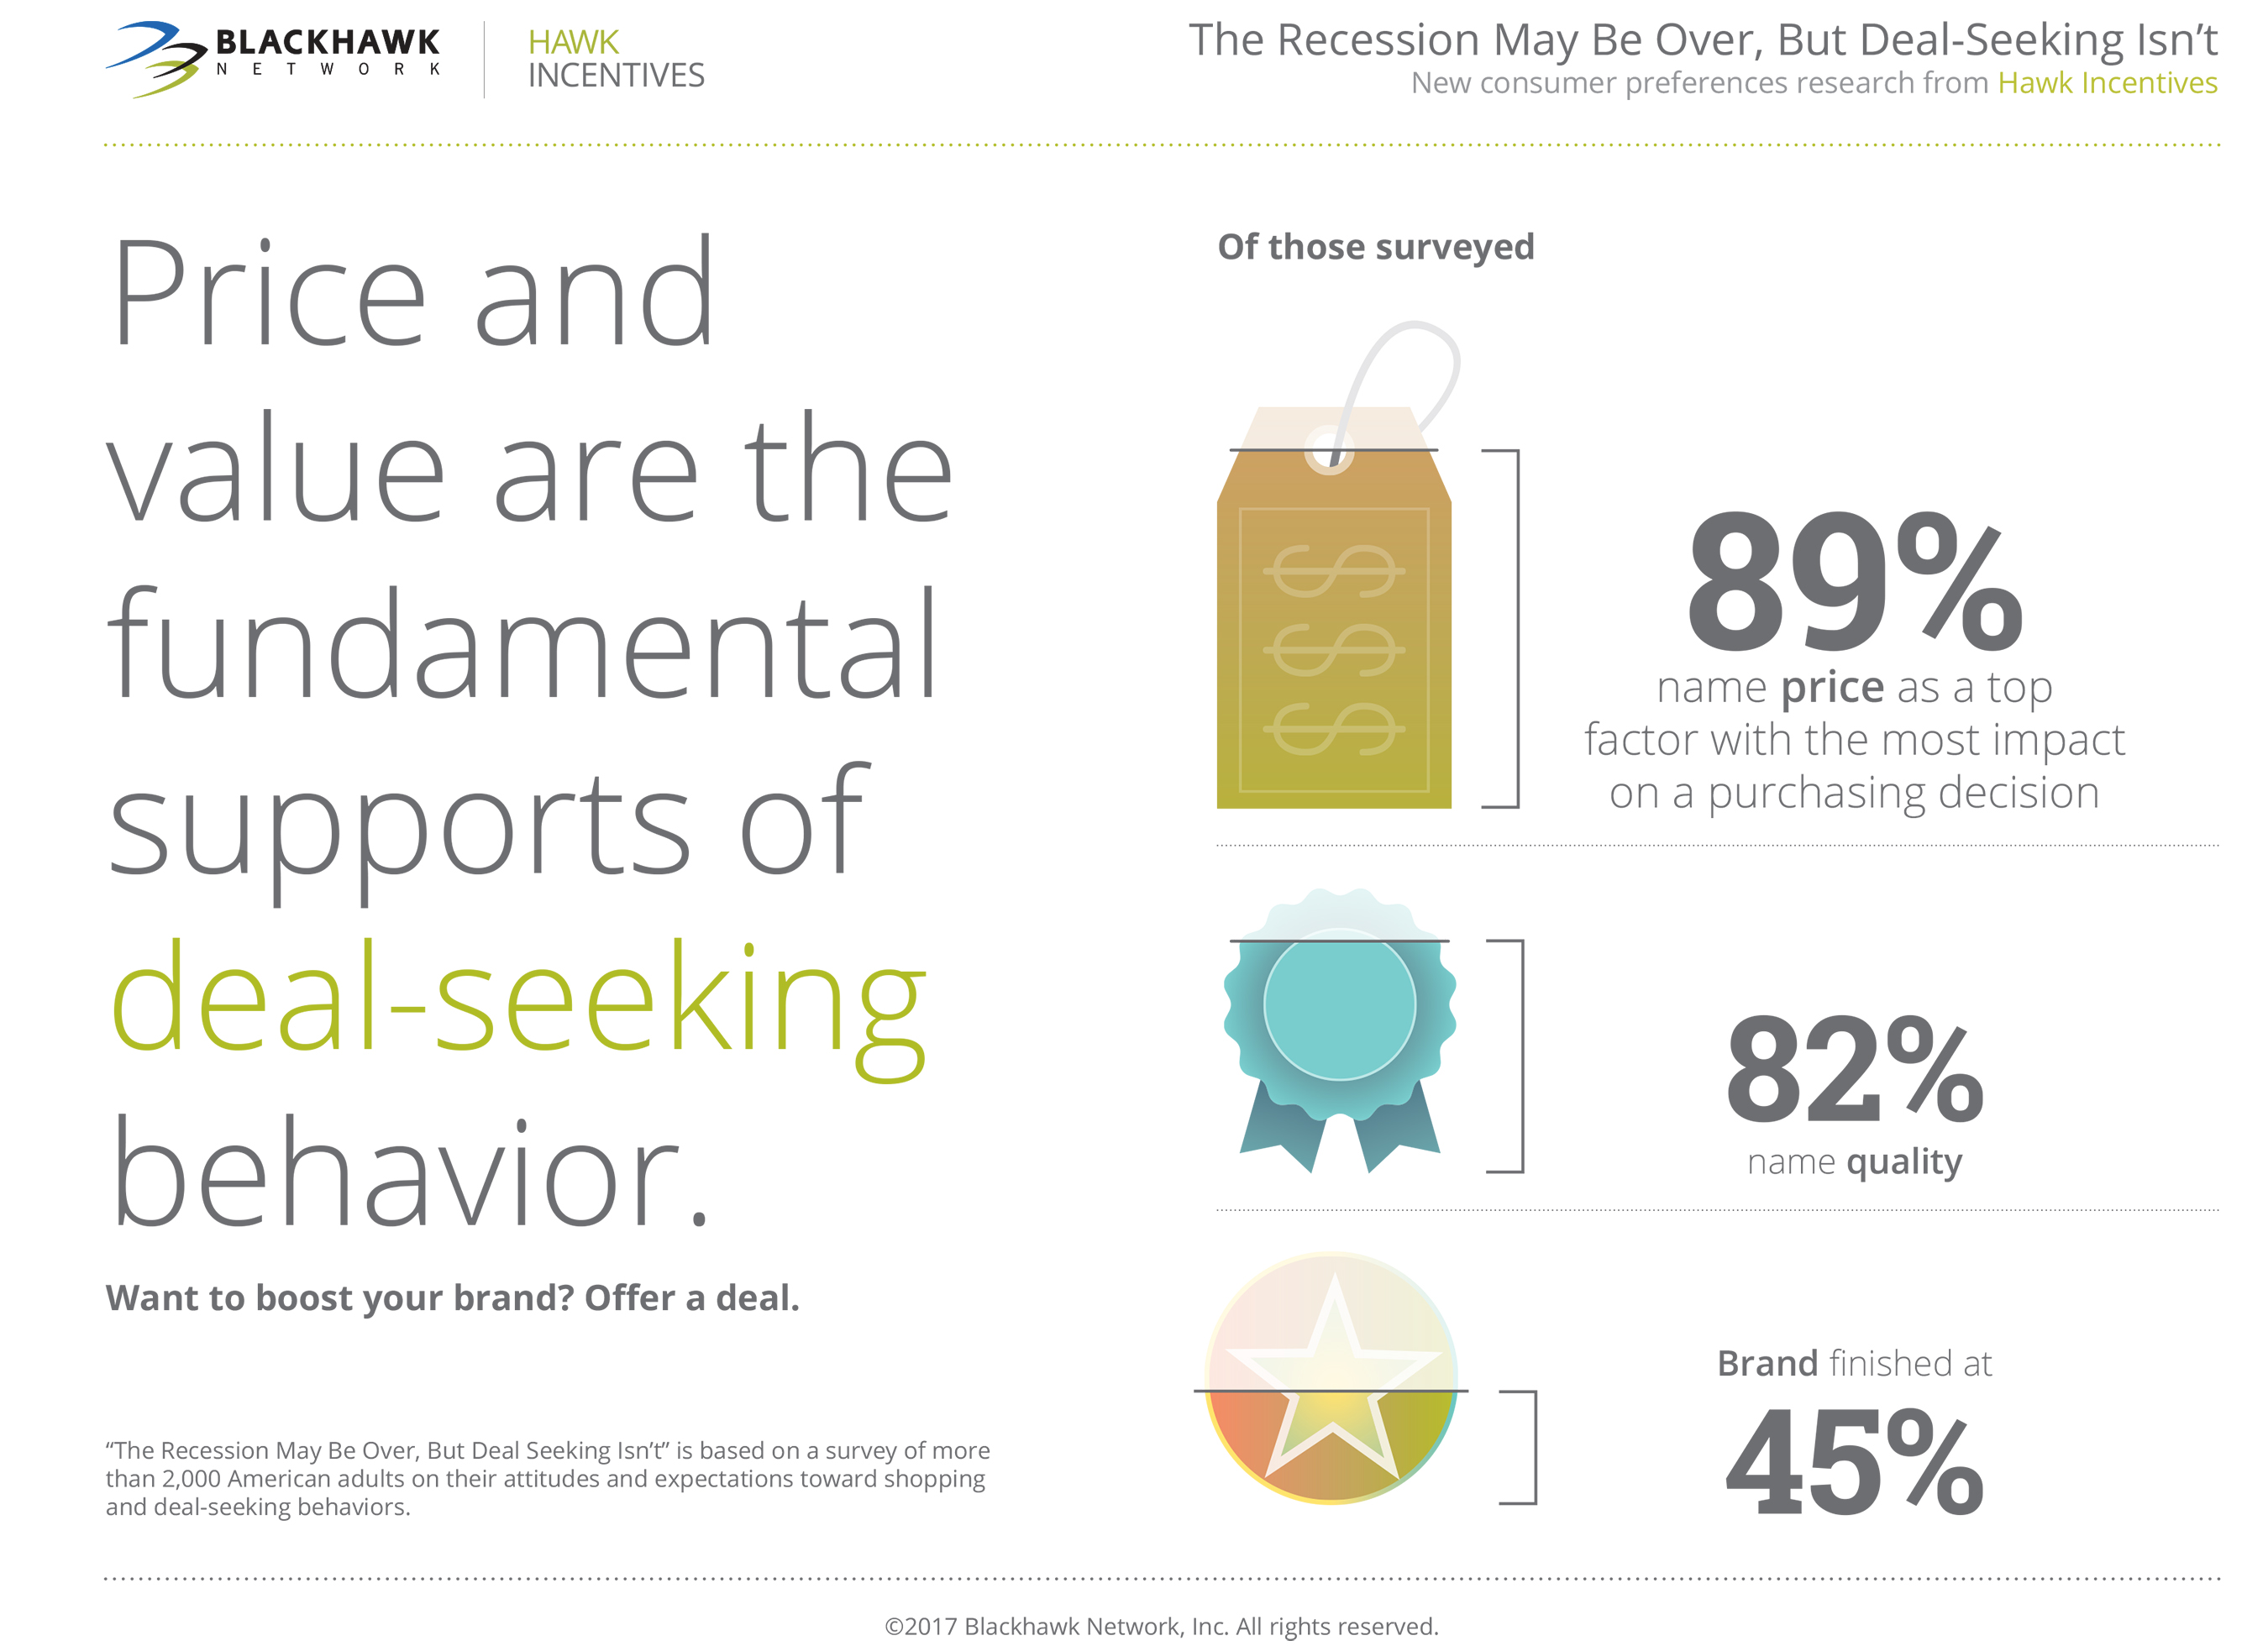 Consumers aren't solely motivated by price when shopping, but it does have an impact.